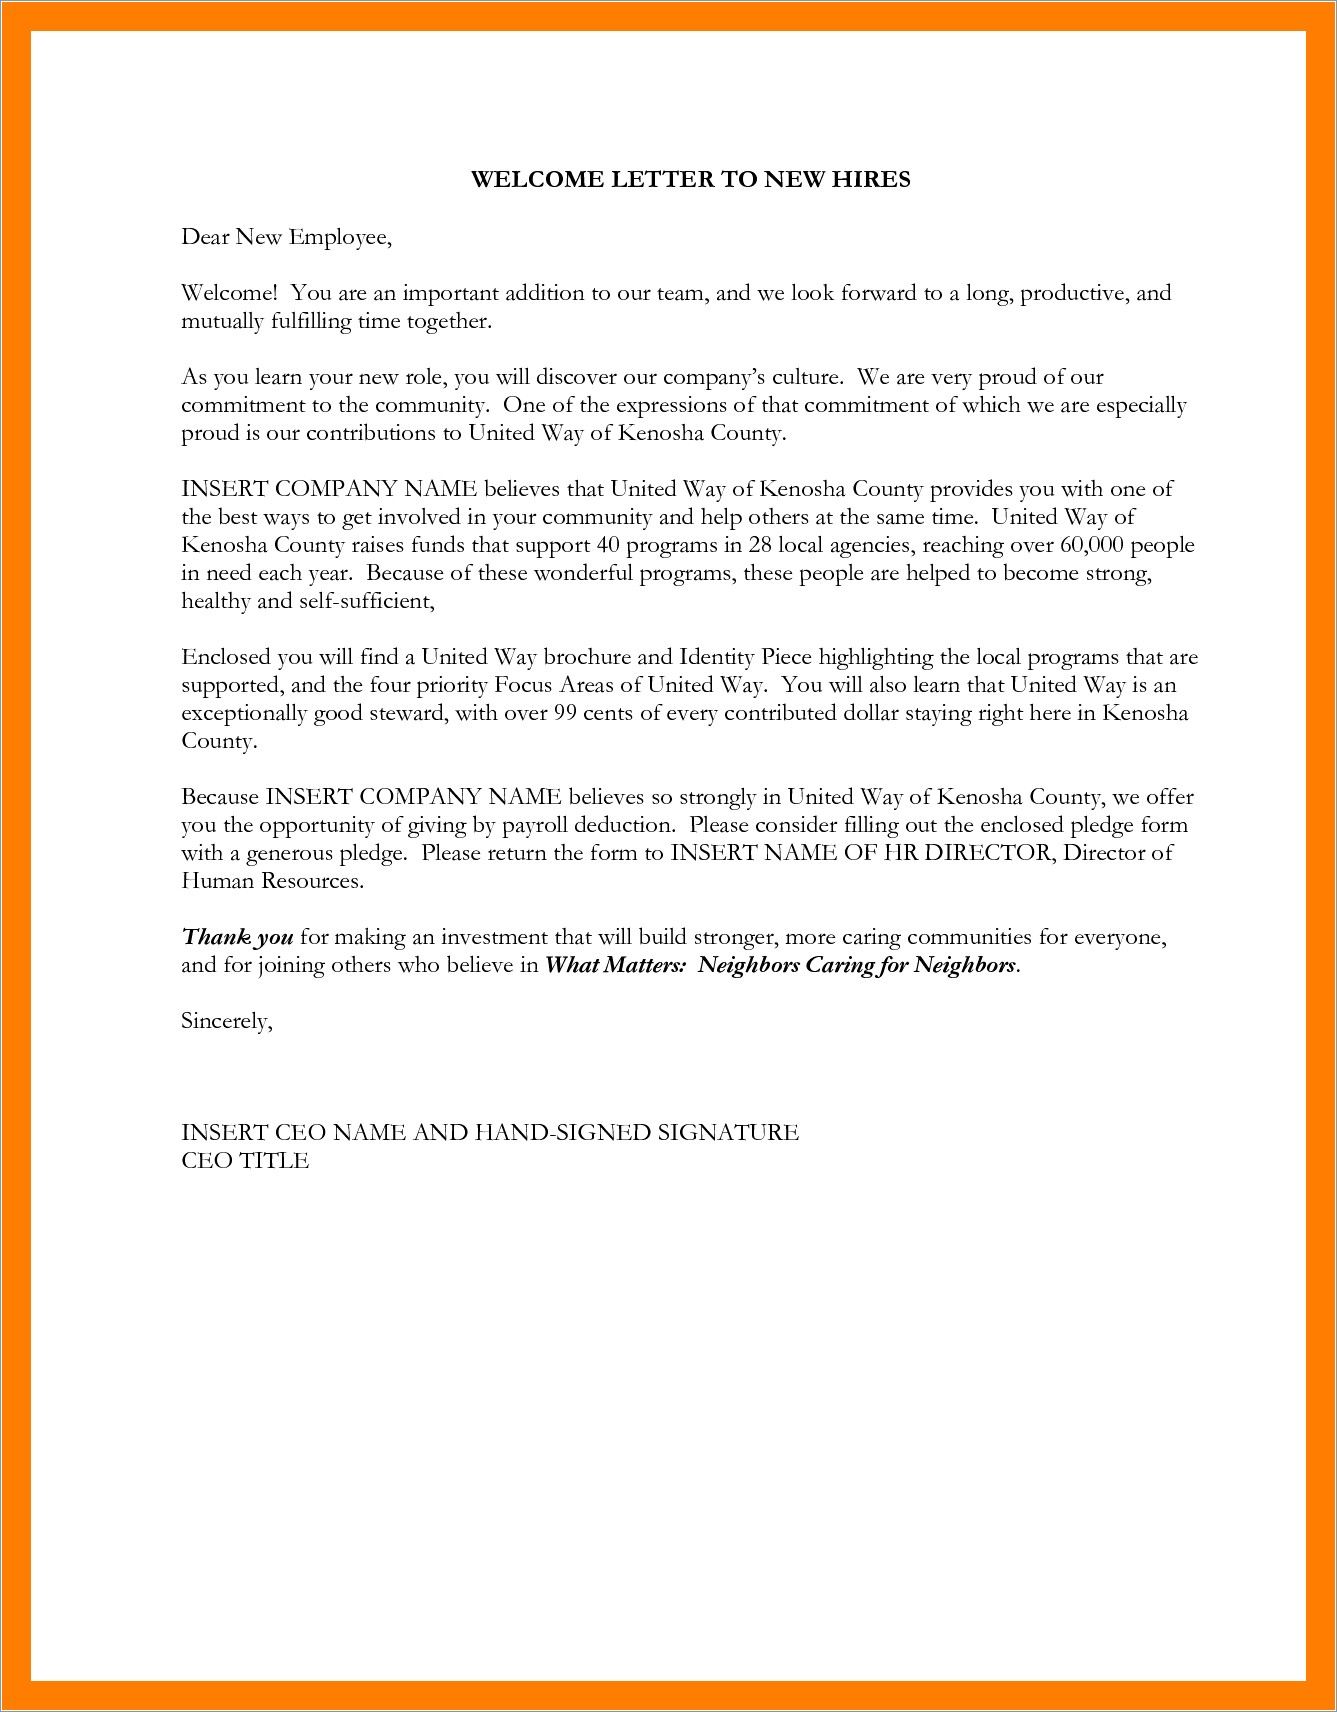 Employee Welcome Letter From Ceo